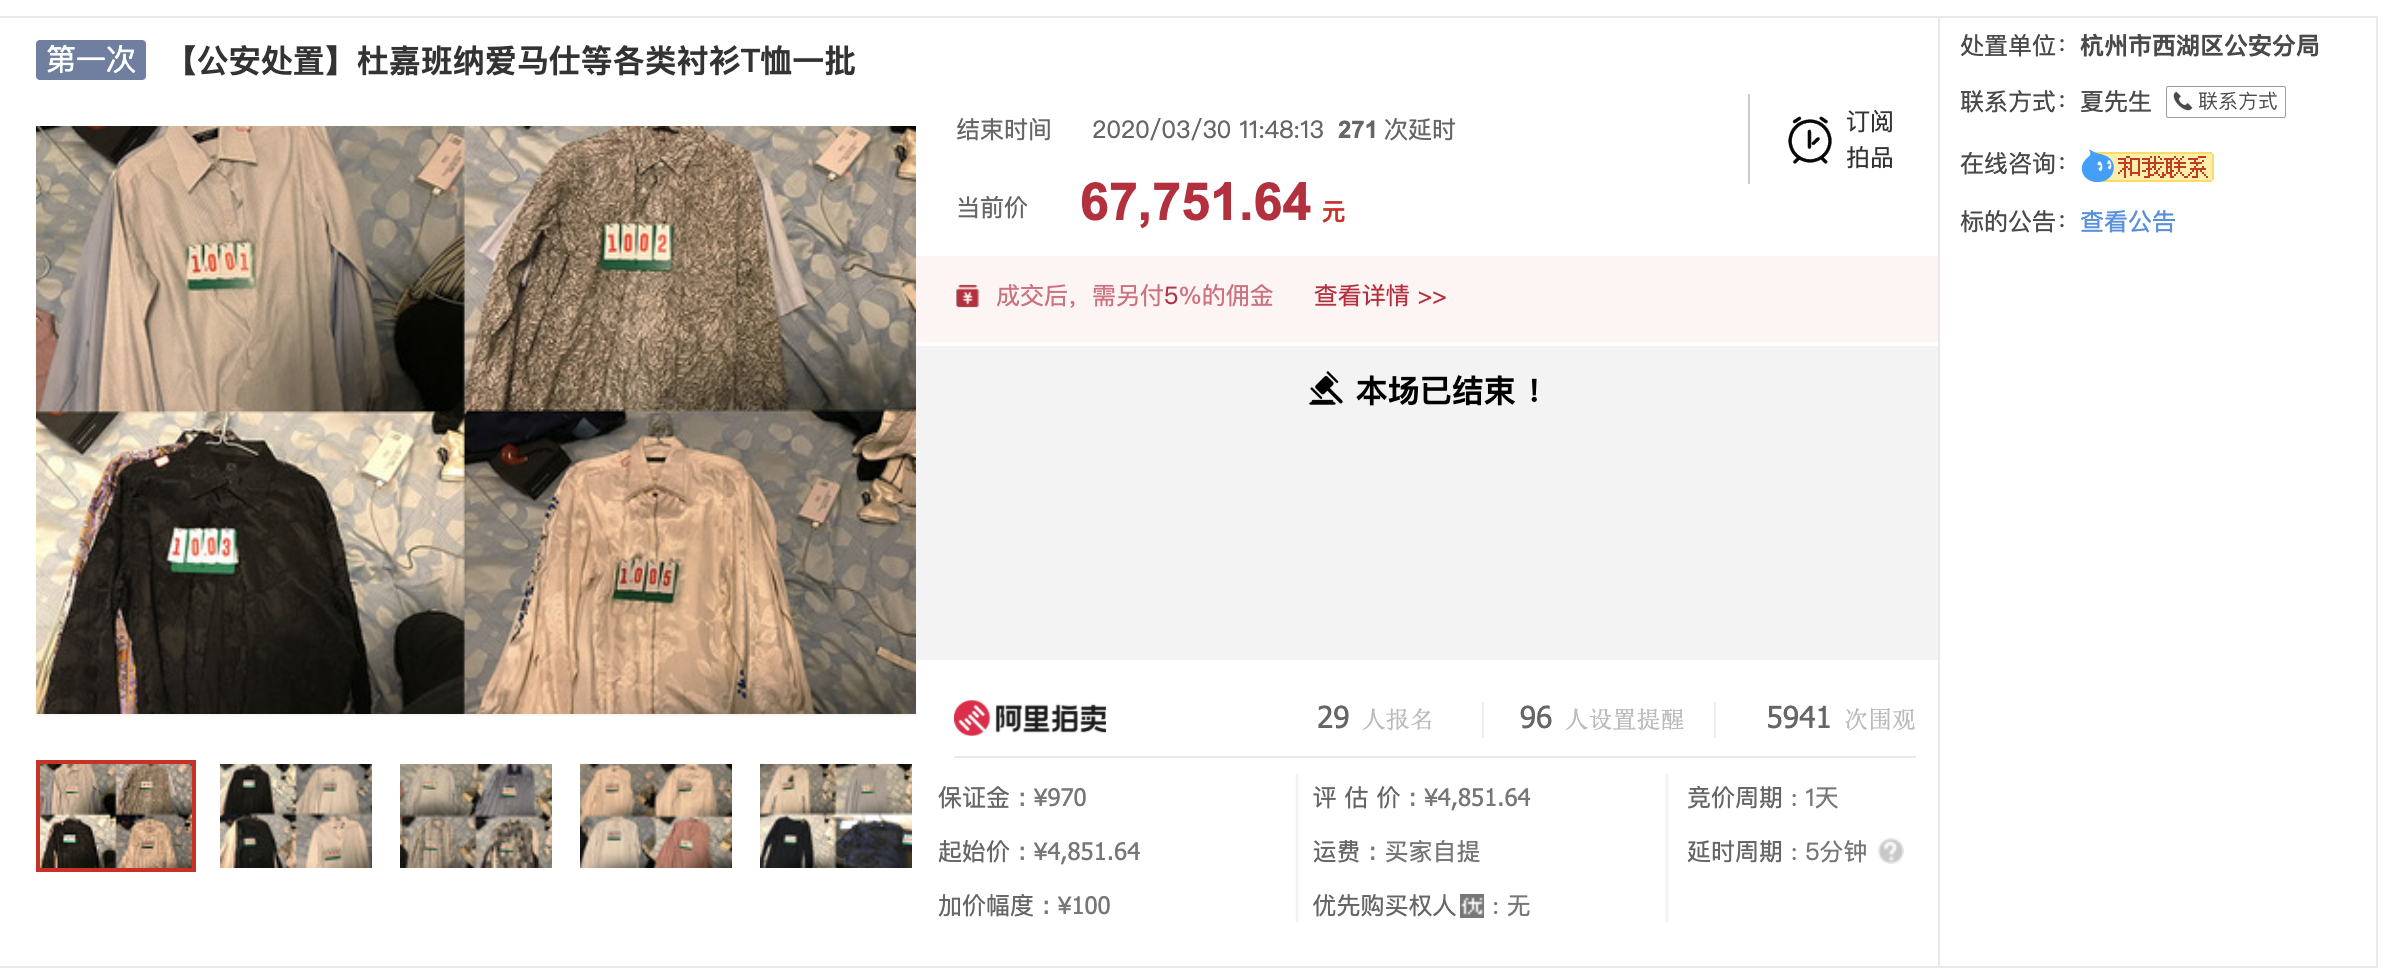 Screenshot of auction result of a lot of men's wear designer clothes on Alibaba's Sifa Paimai.